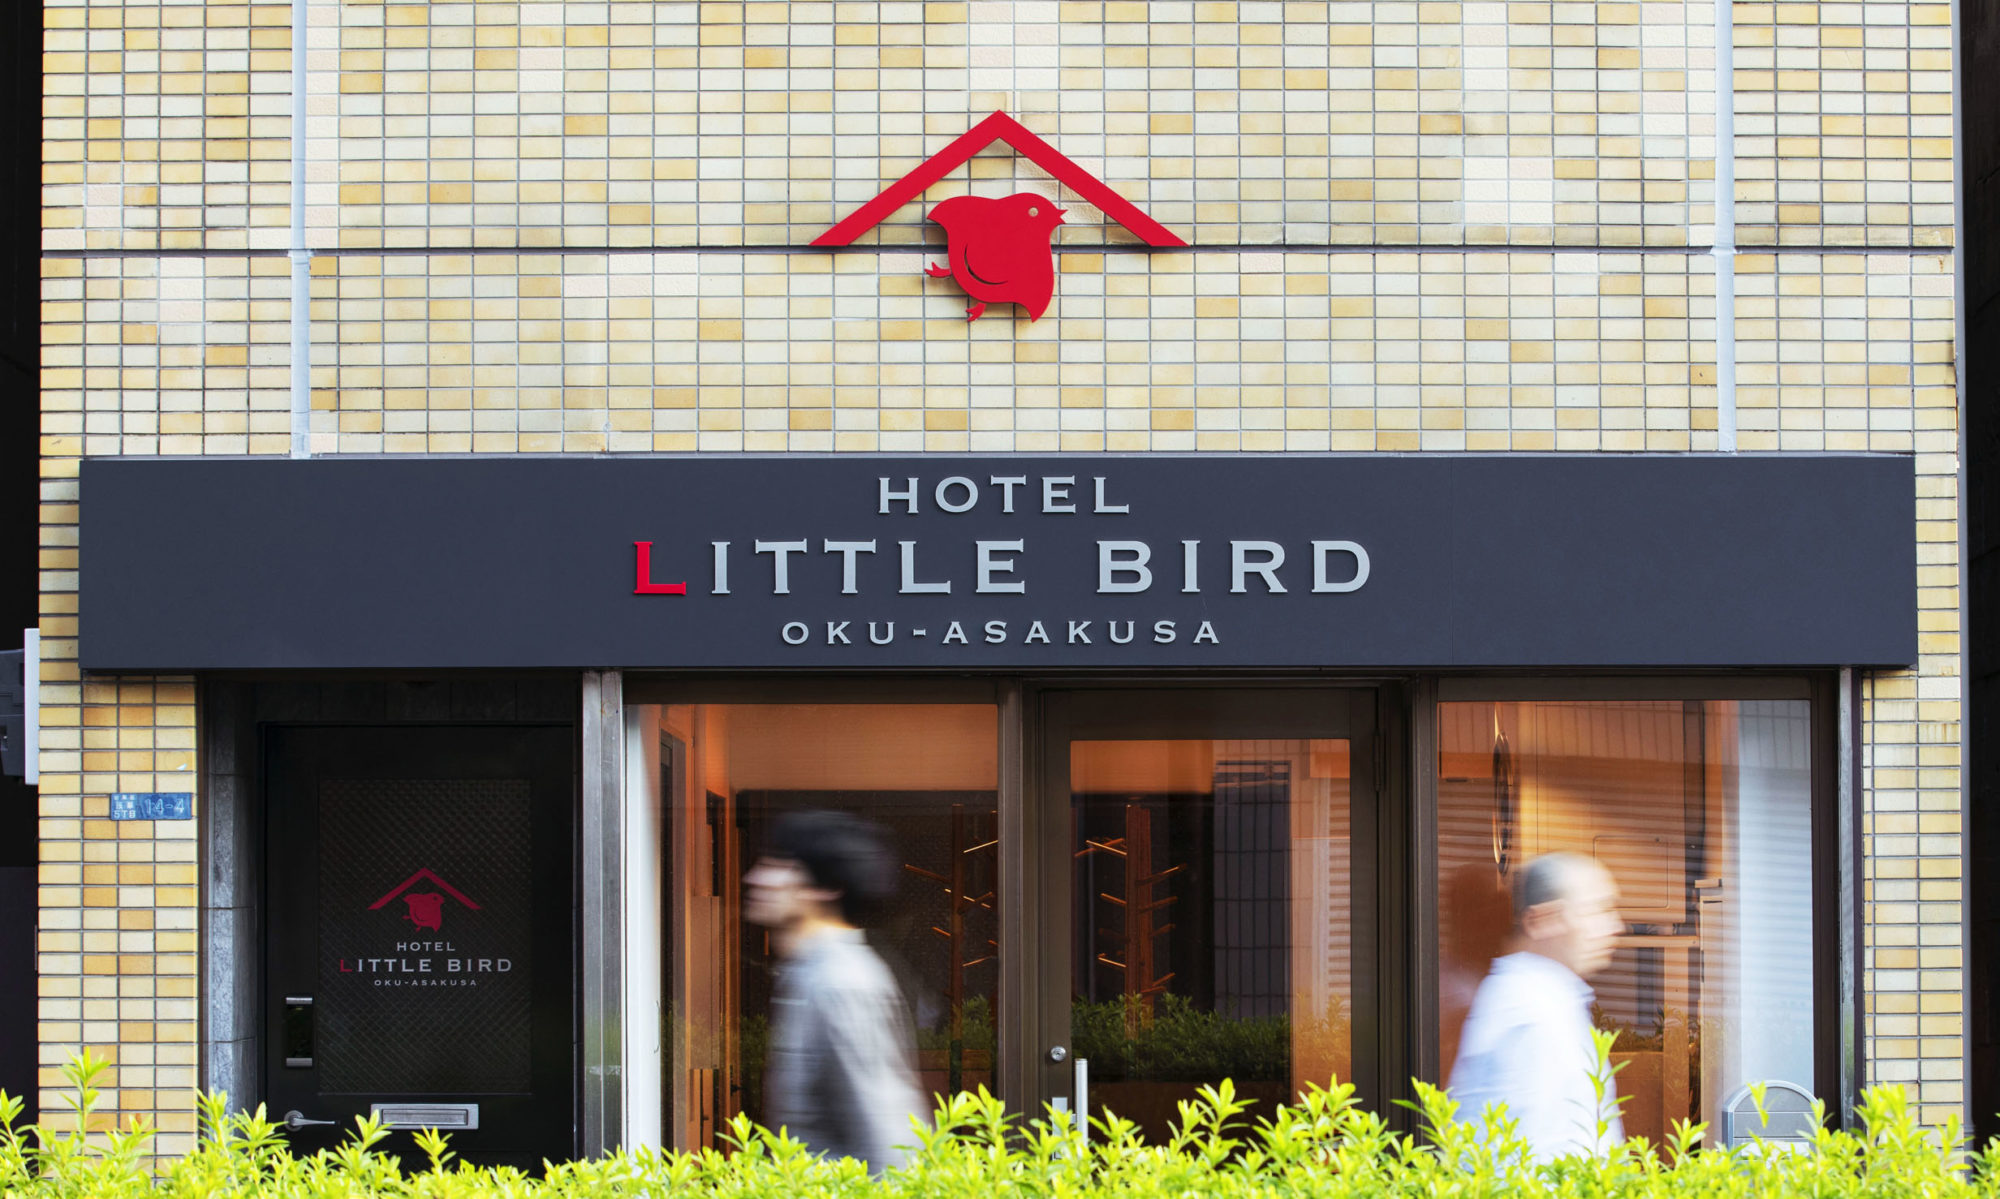 Hotel Little Bird Oku-asakusa